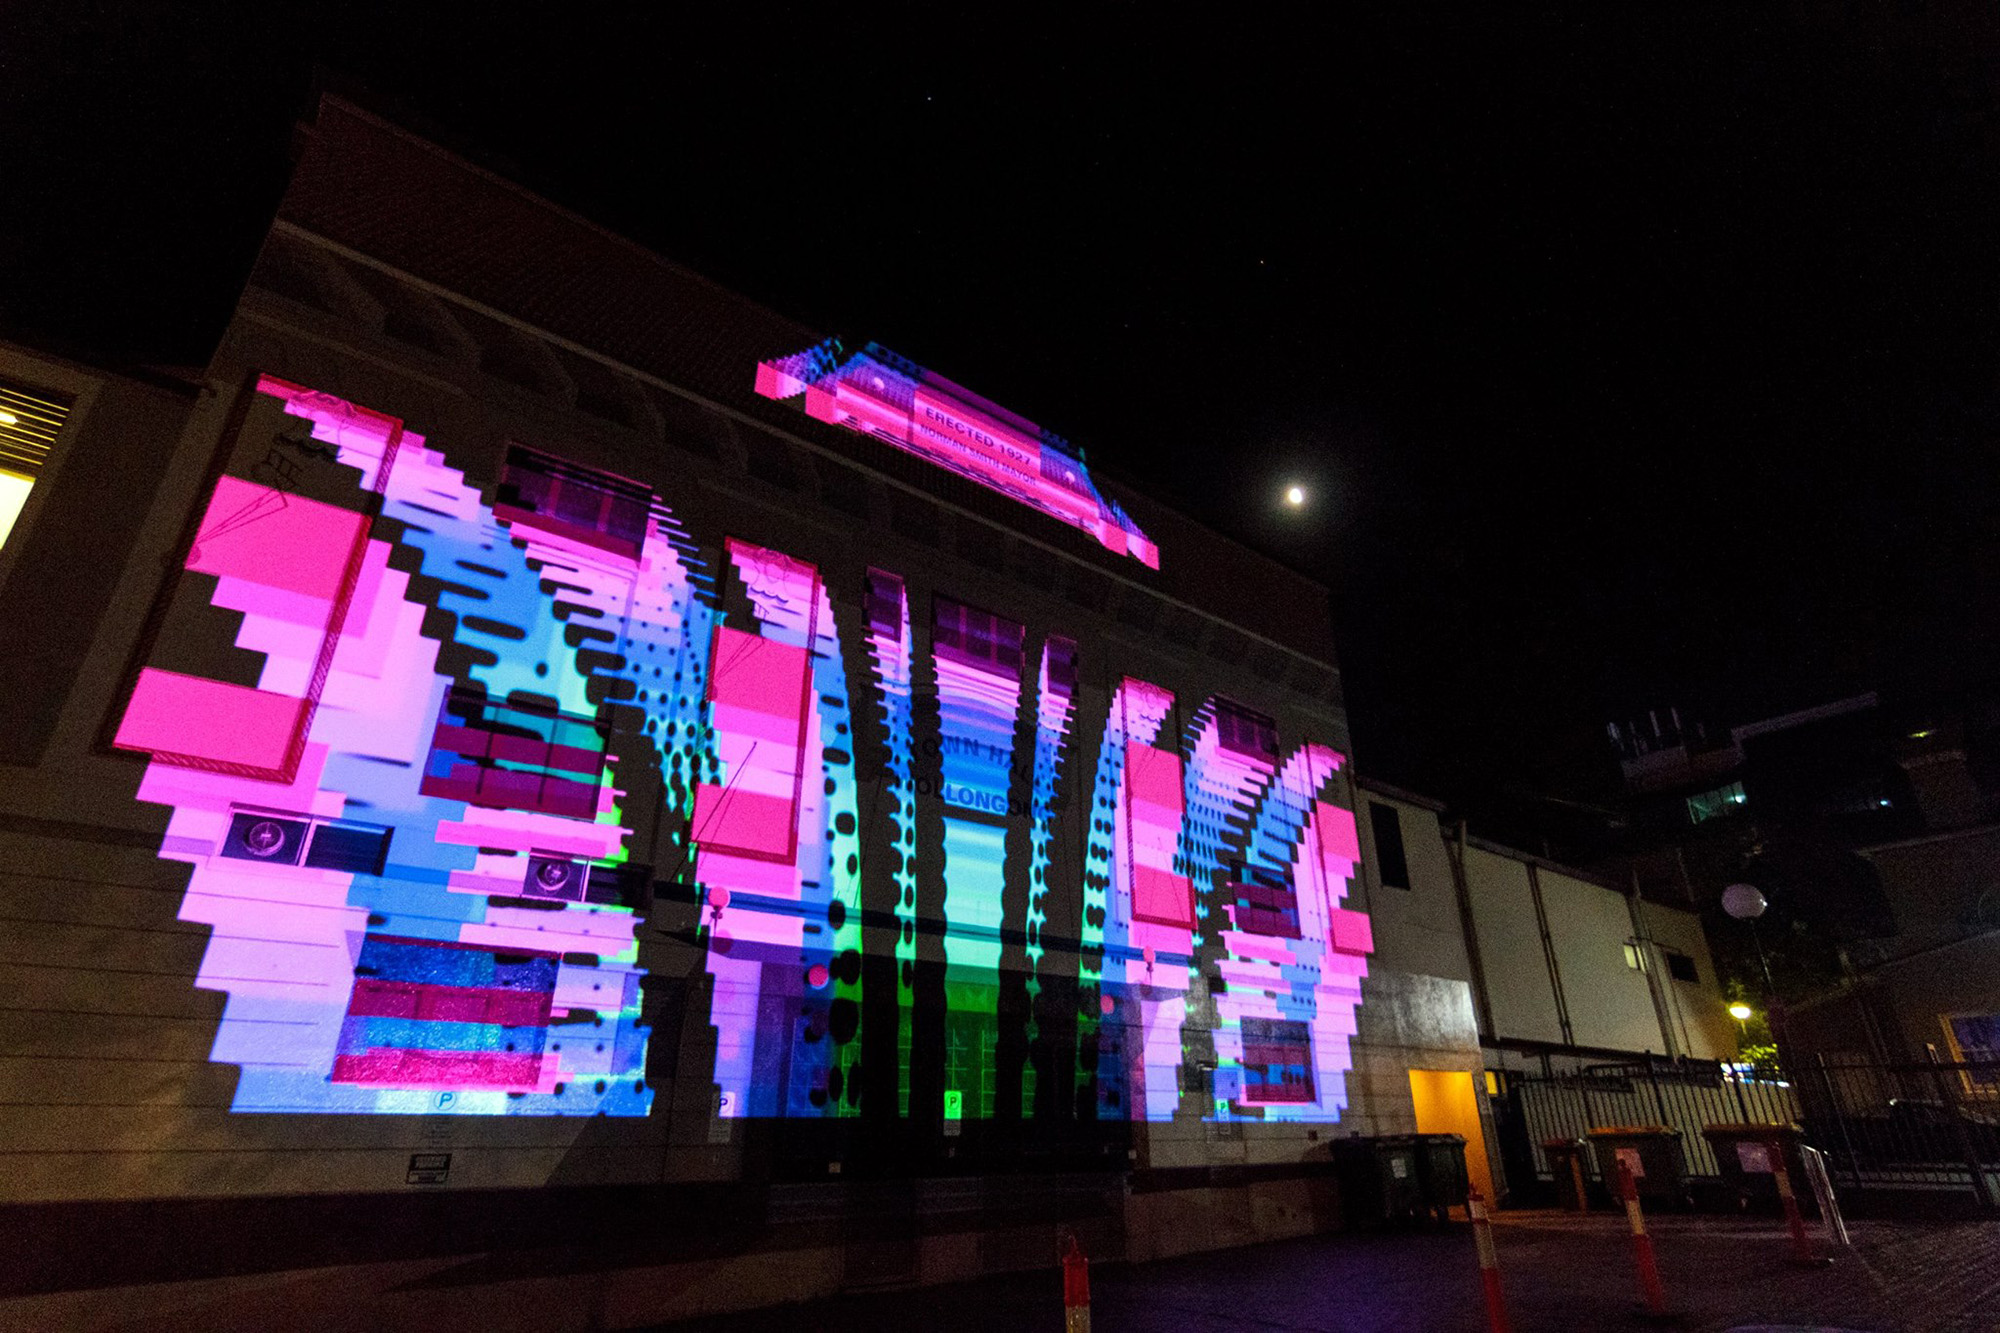 Chris Anderson's NOCTURNAL ARTS - WOLLONGONG CITY COUNCIL: Live projections mapped onto Wollongong Town Hall with Zender Bender. Commissioned by the Wollongong City Council as part of the Nocturnal Arts program aimed activating the Wollongong Arts Precinct after dark.